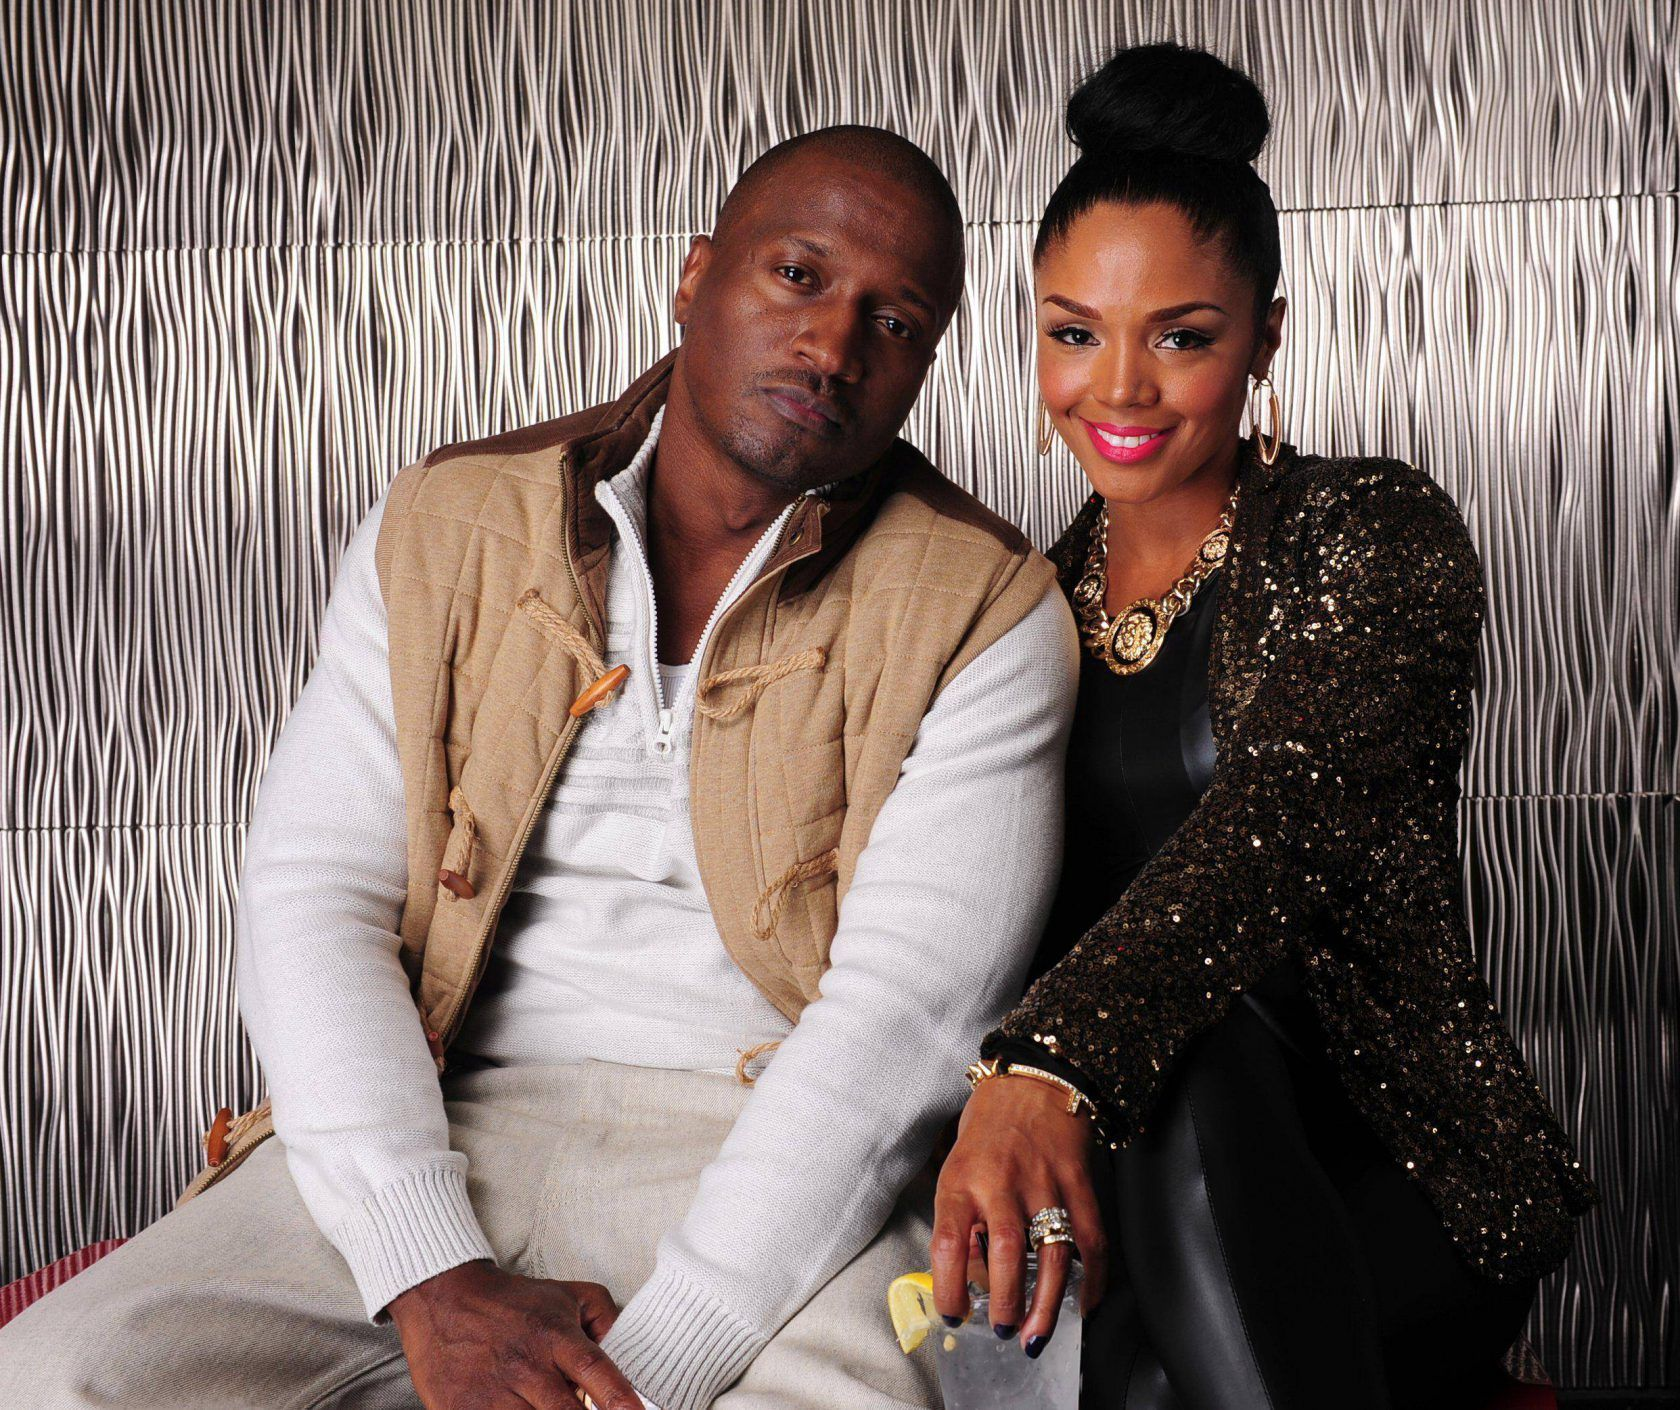 Rasheeda Frost's Fans Love Her Latest Video In Which Kirk Frost Advertises Her Pressed Boutique - People Want A Lavish Vow Renewal!